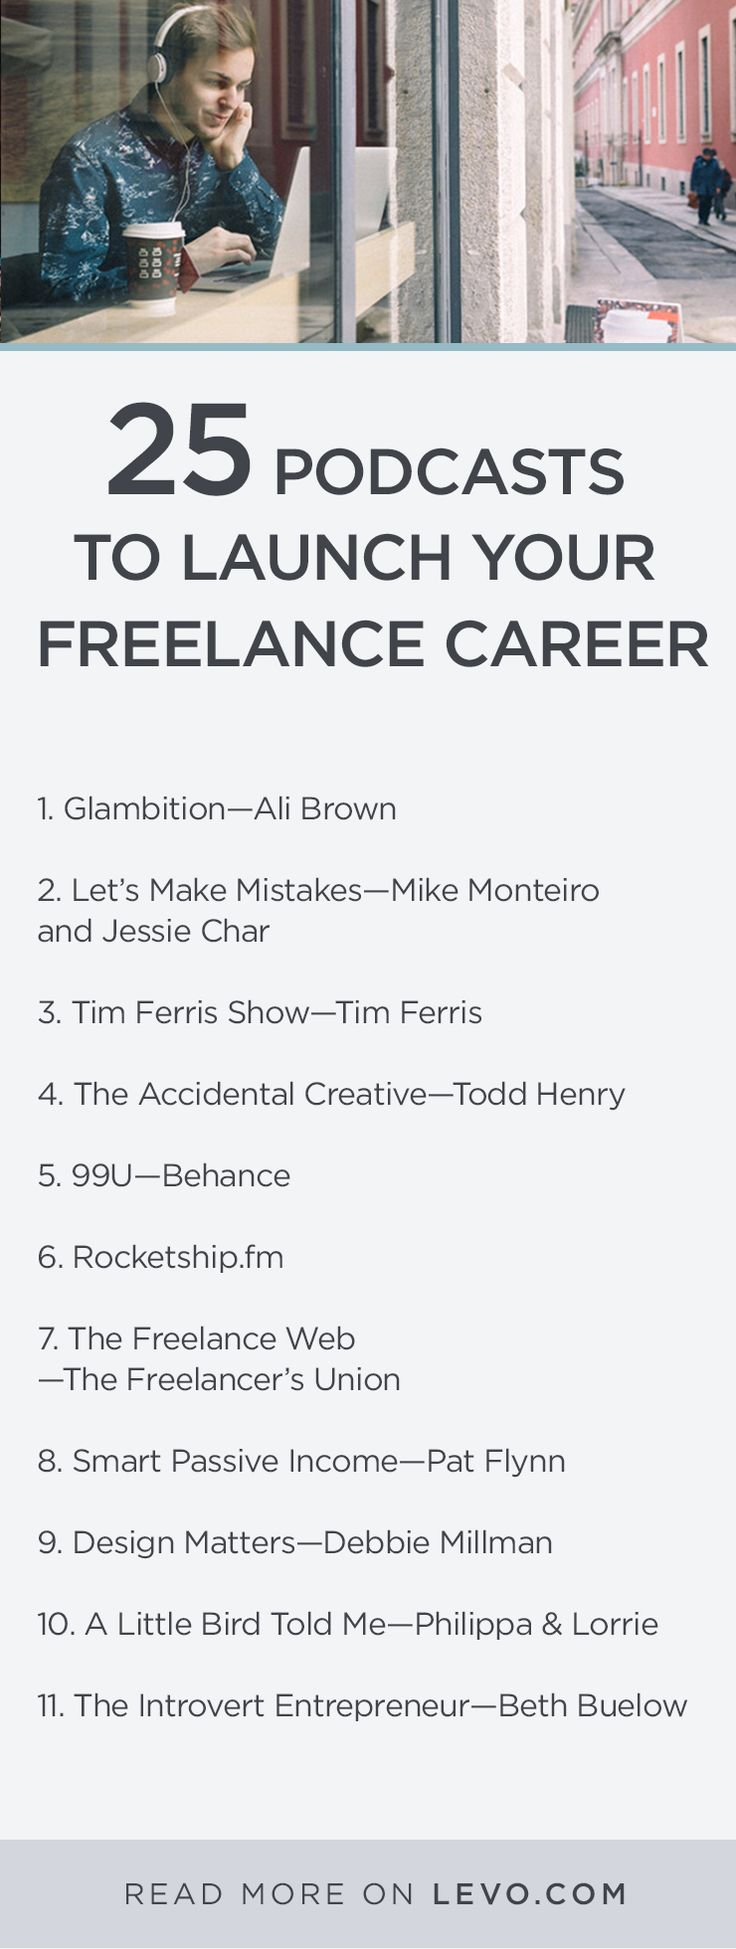 25 Podcasts To Launch Your Freelance Career In 2016